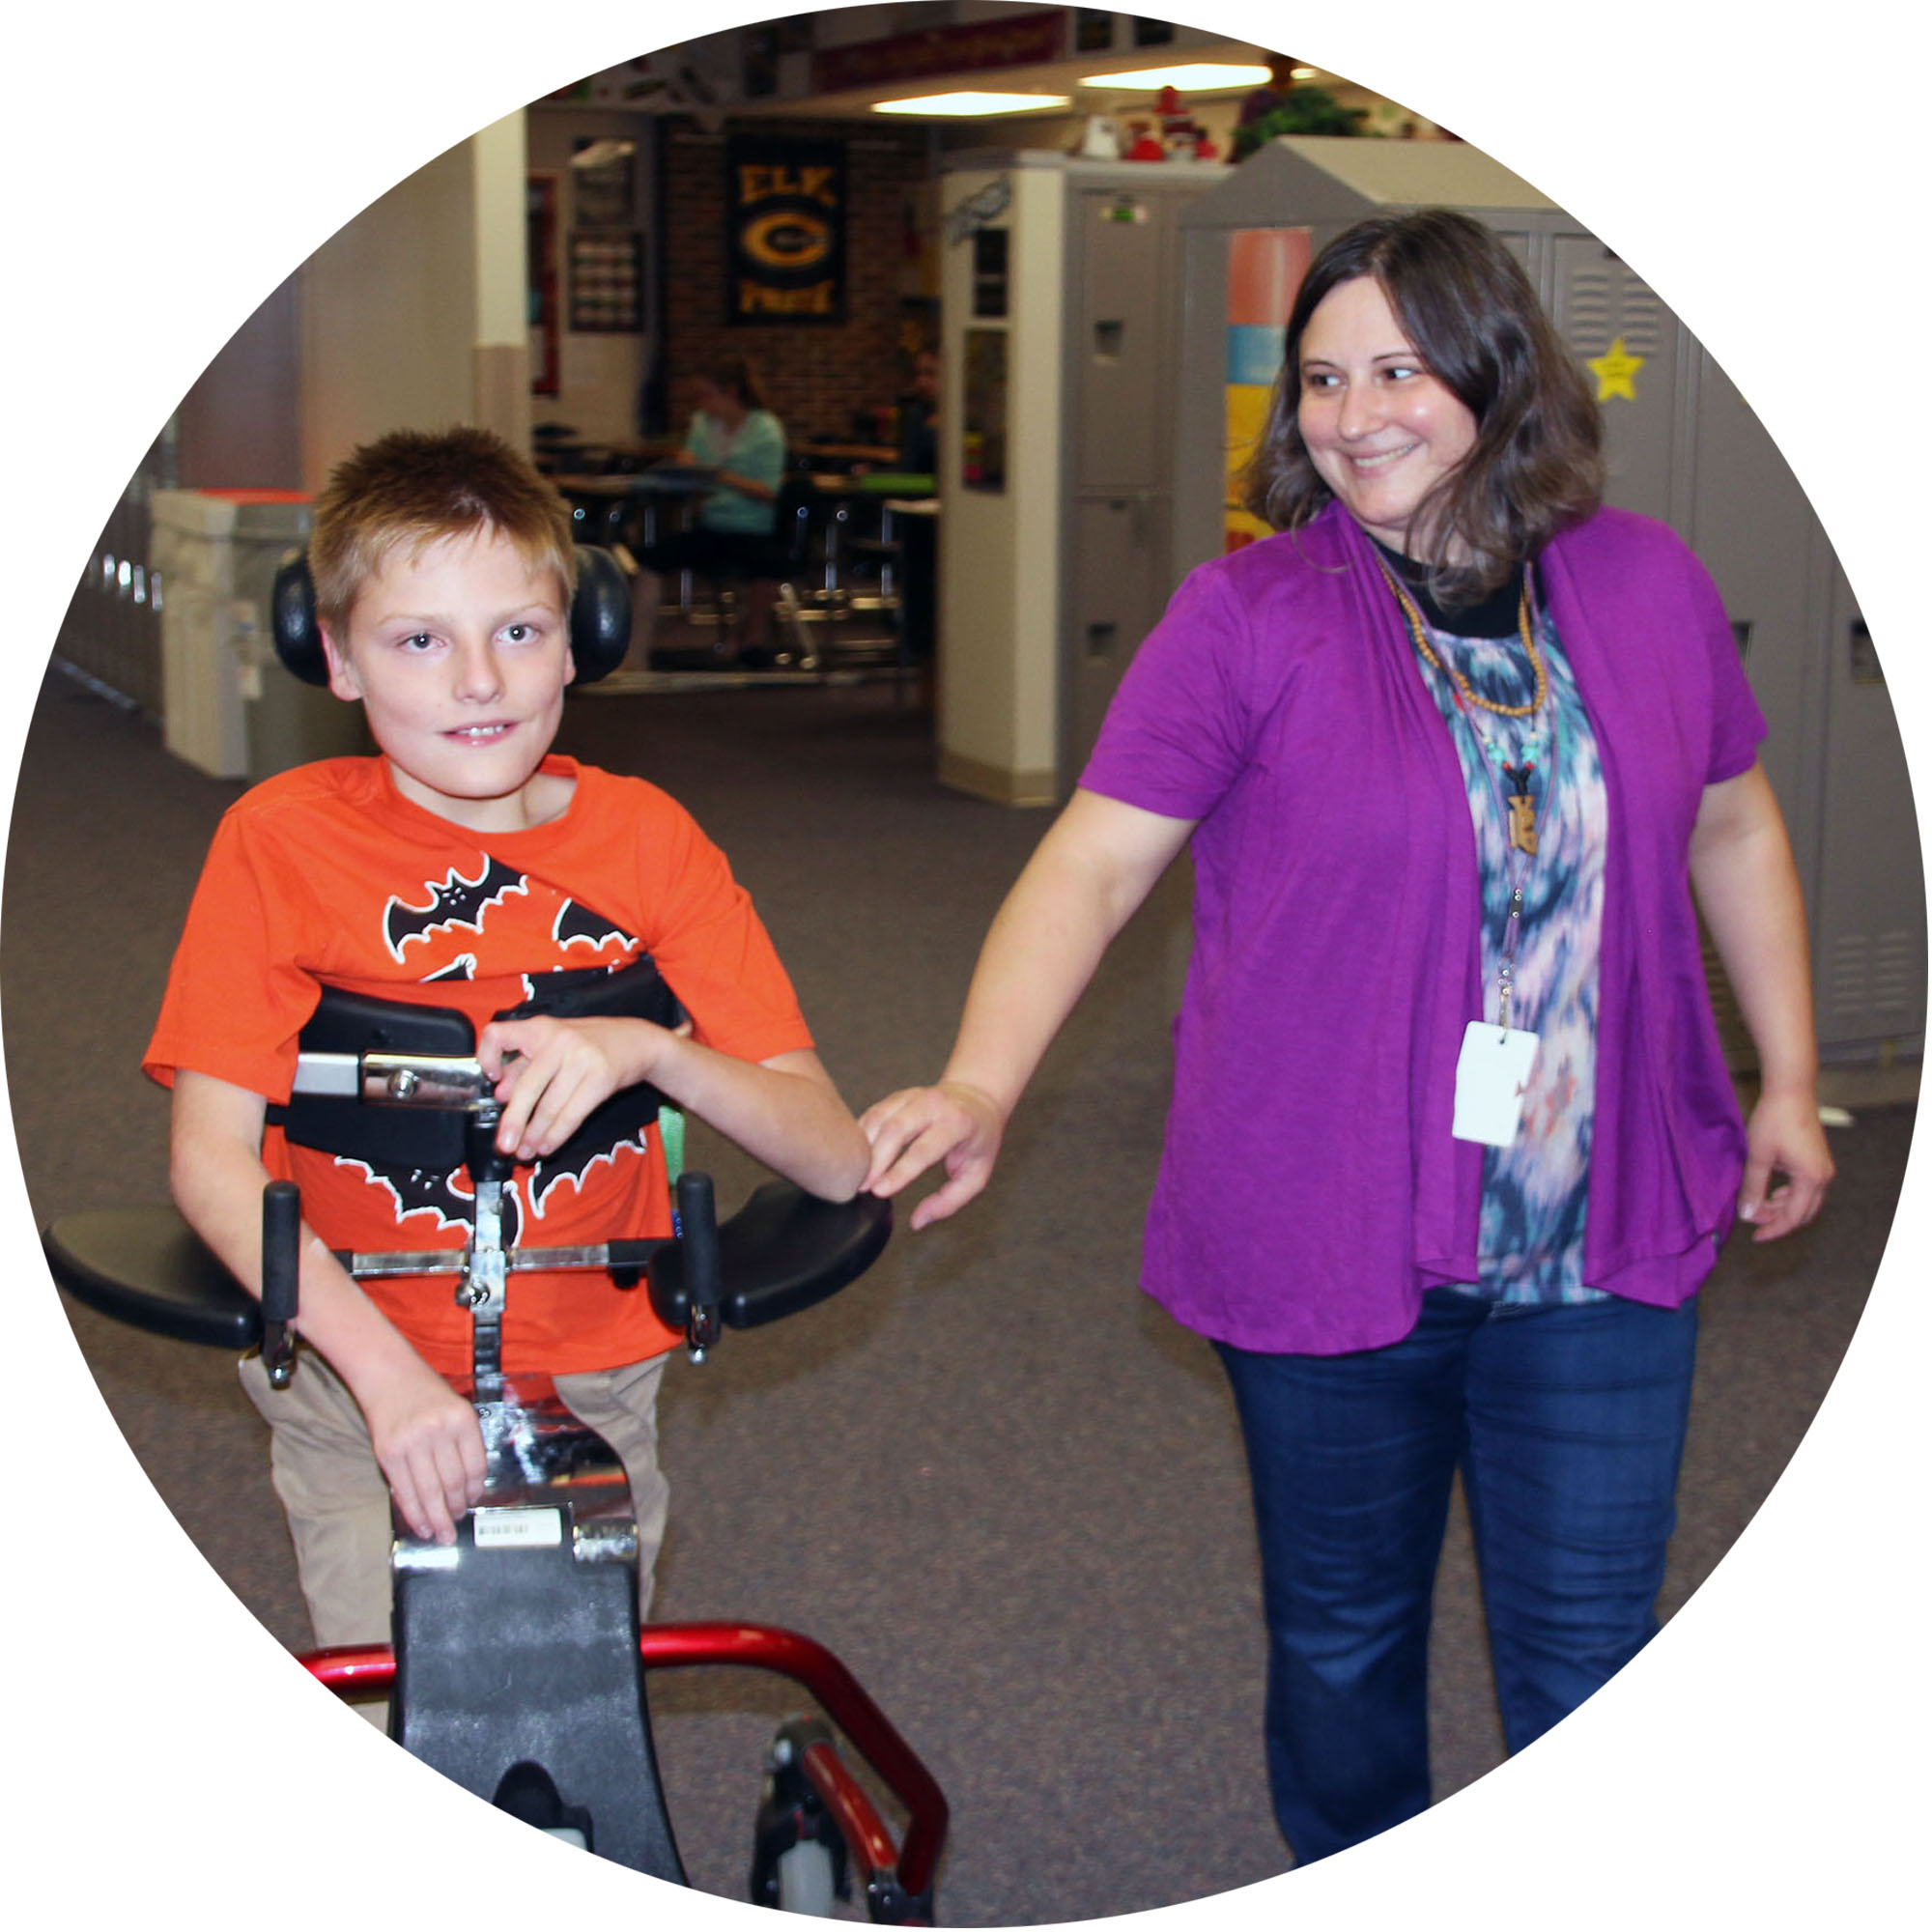 Image of teacher walking with student with special needs